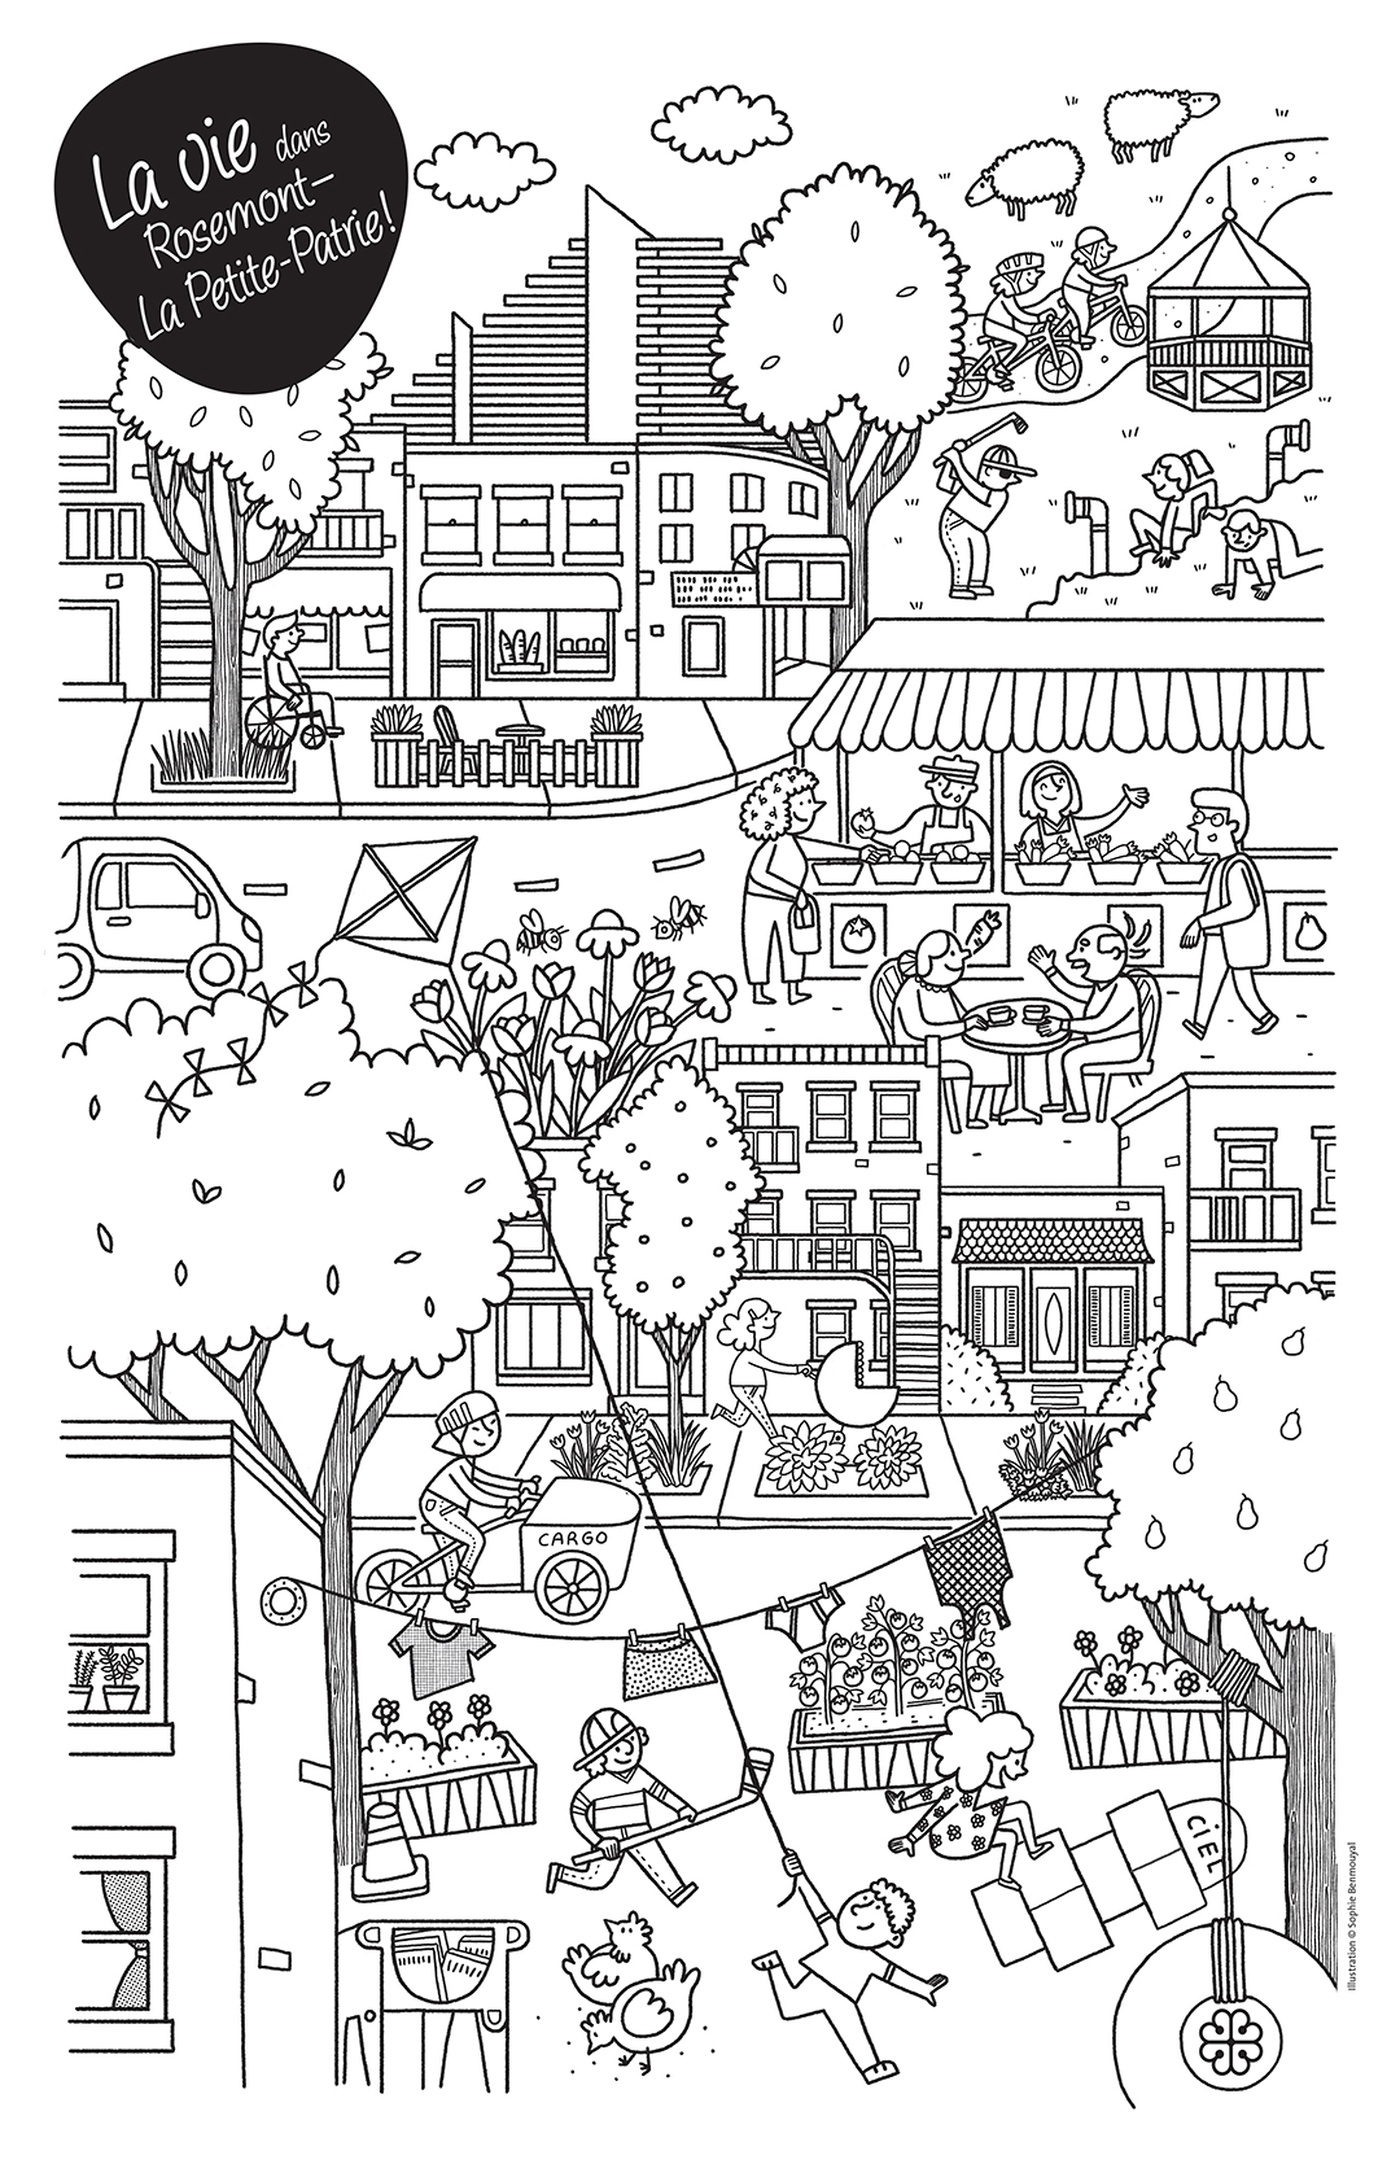 Sophie Benmouyal - 837_ROSEMONT_coloriage11x17_gray